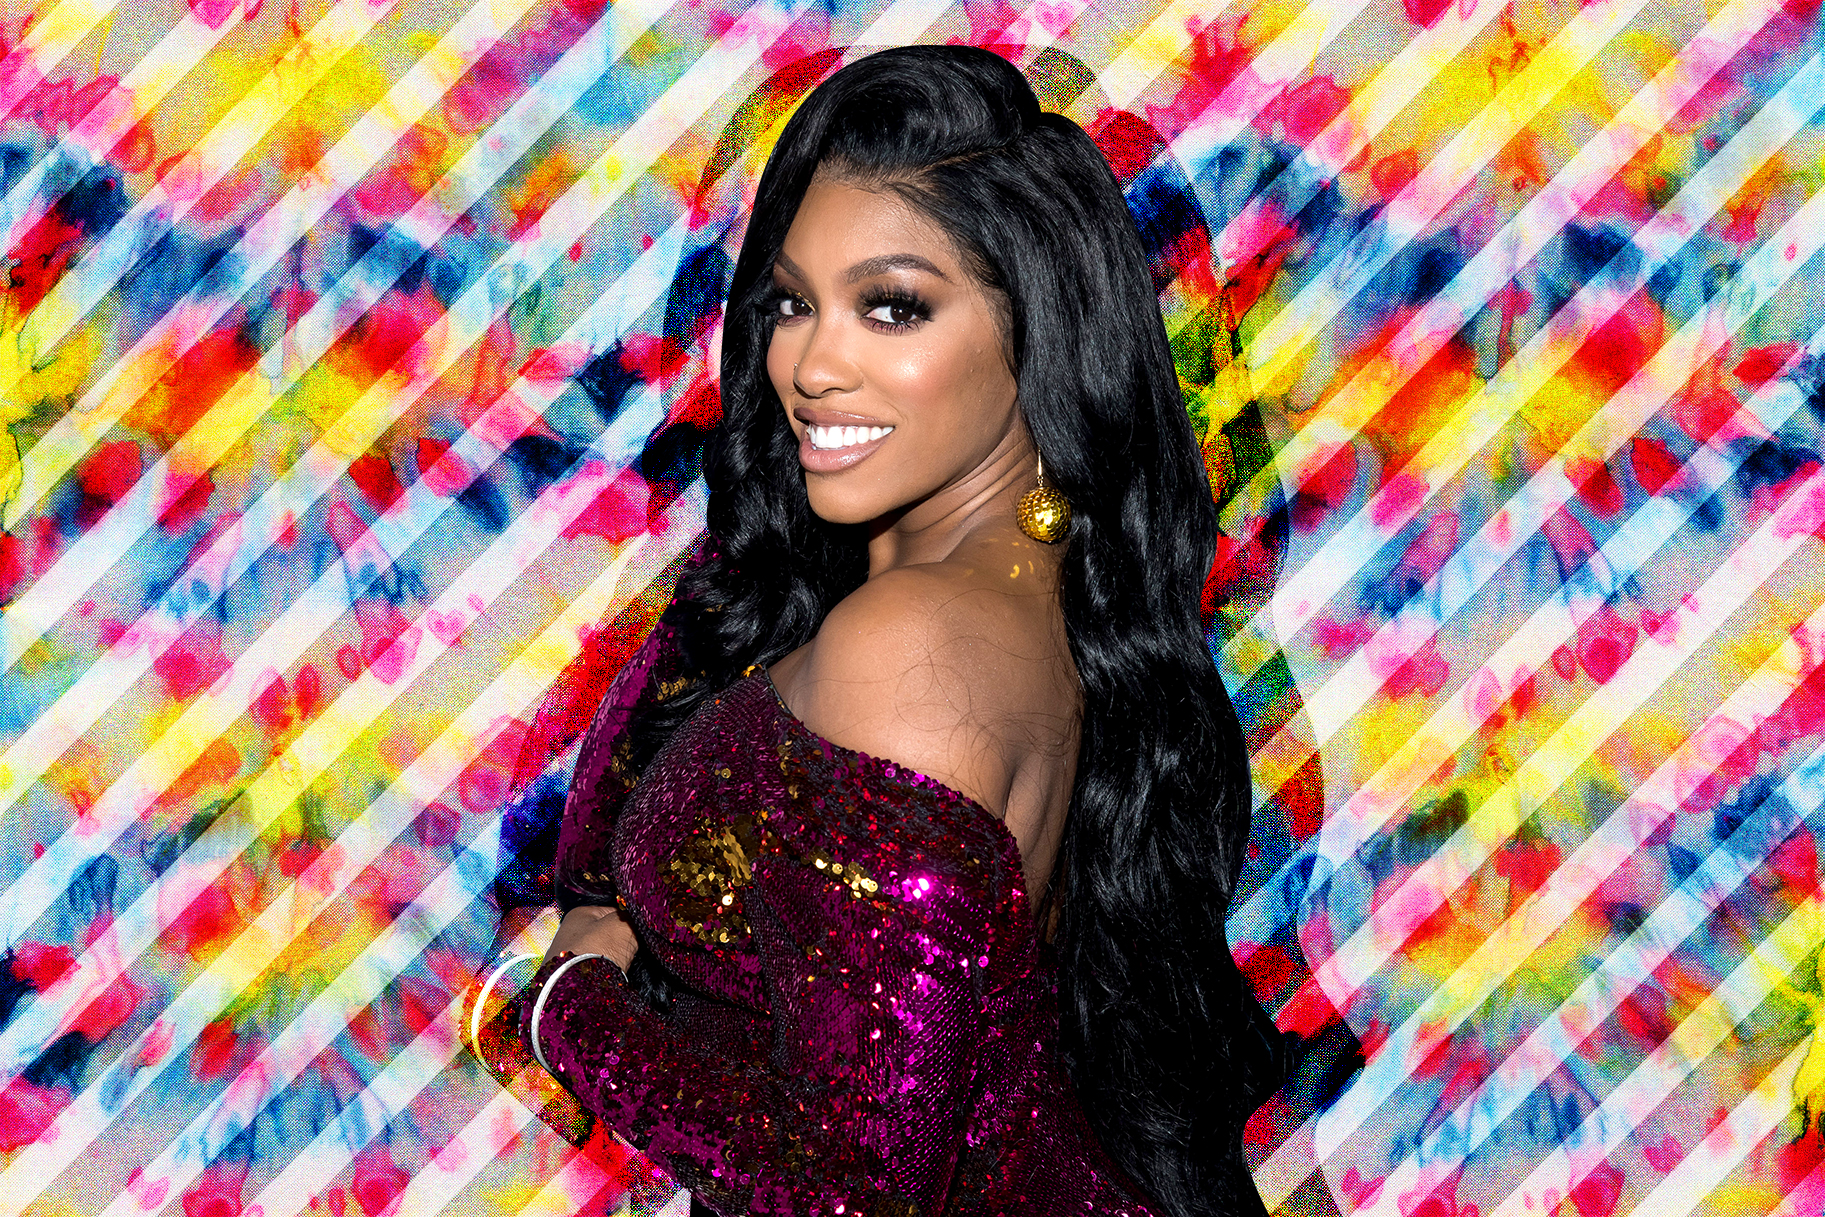 Porsha Williams Talks About RHOA Season 13 And Describes How Her Daughter Fuels Her Activism - See Her Video